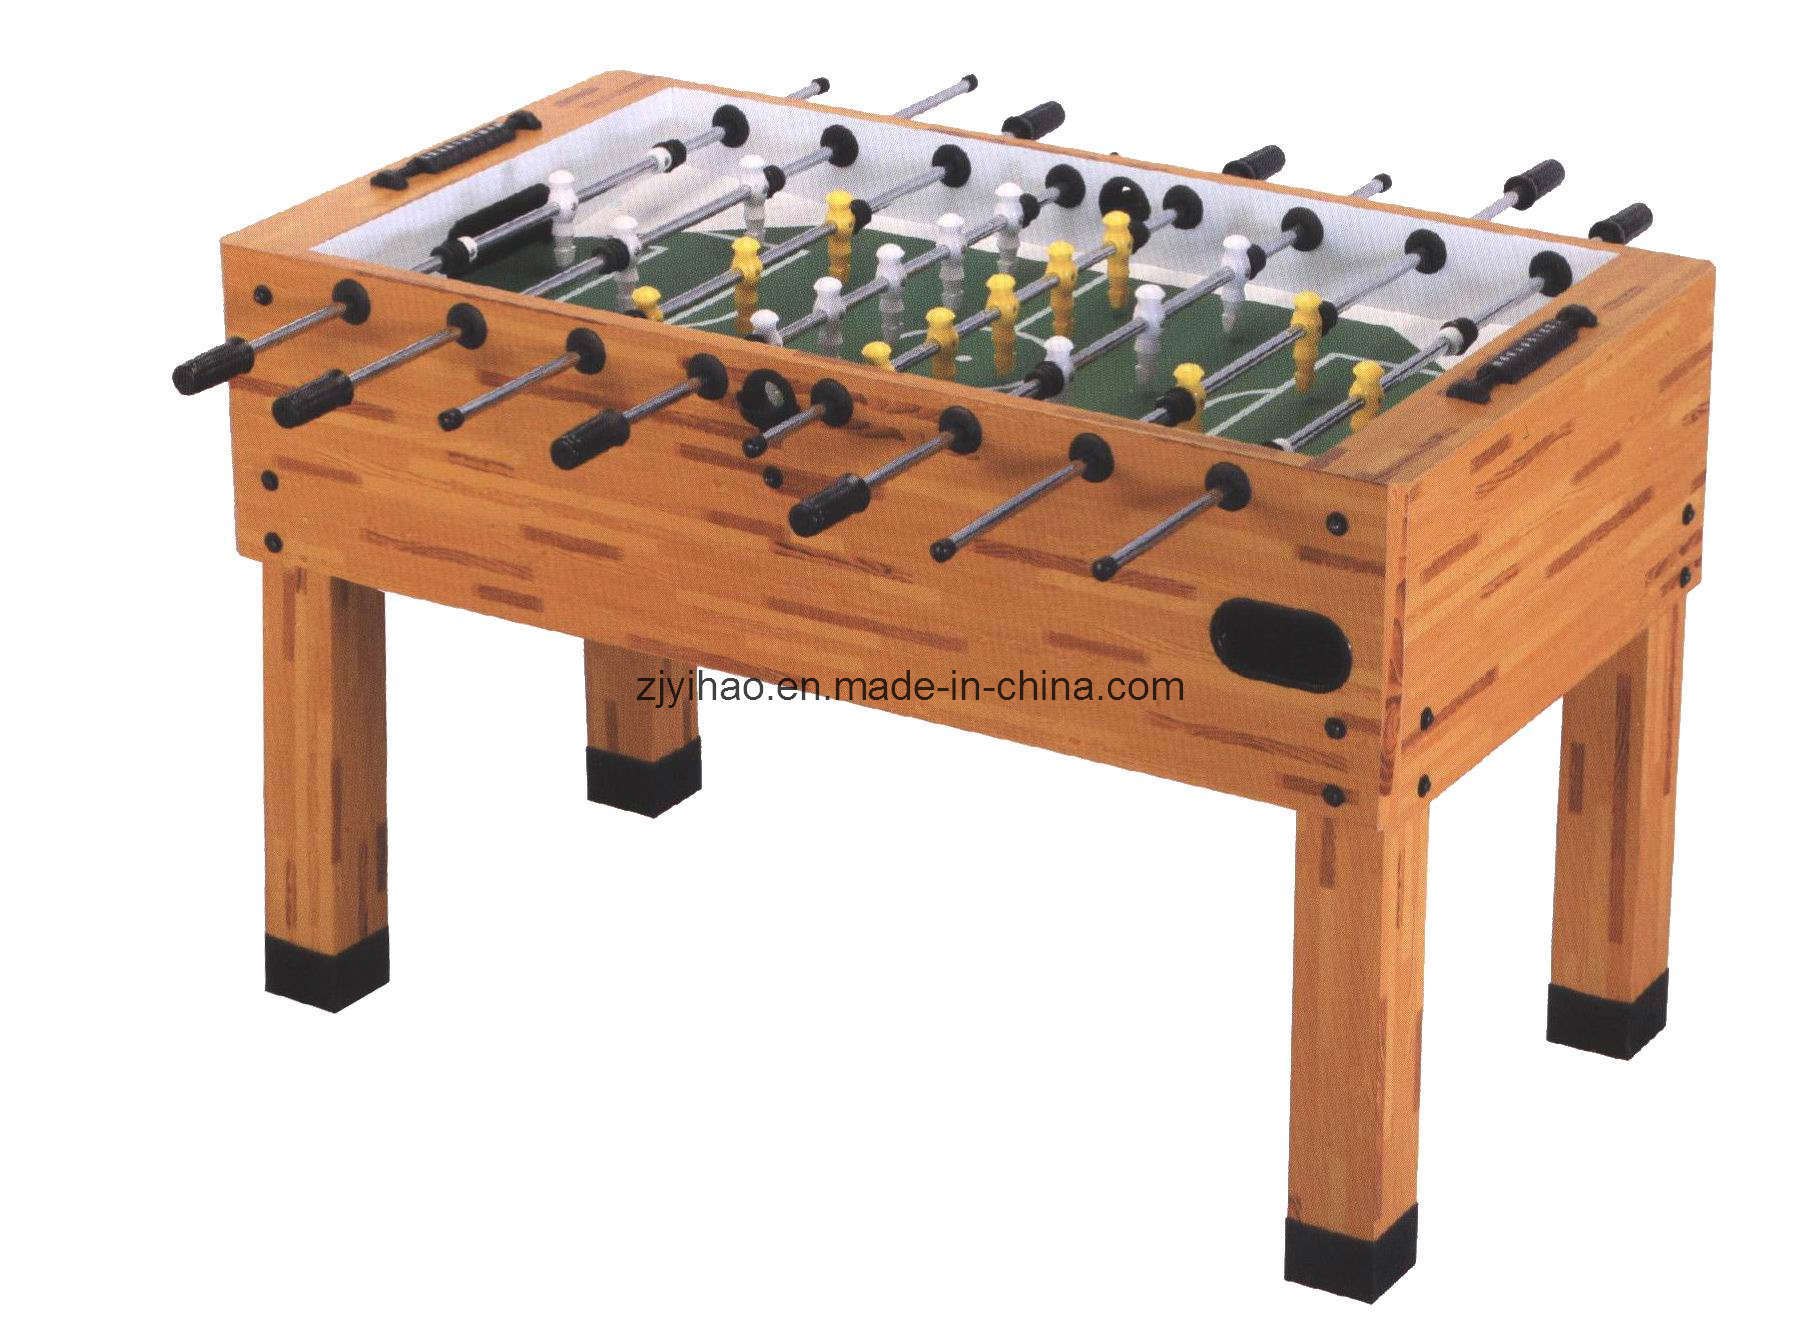 China mini foosball soccer table yh 111 china foosball for Y h furniture trading